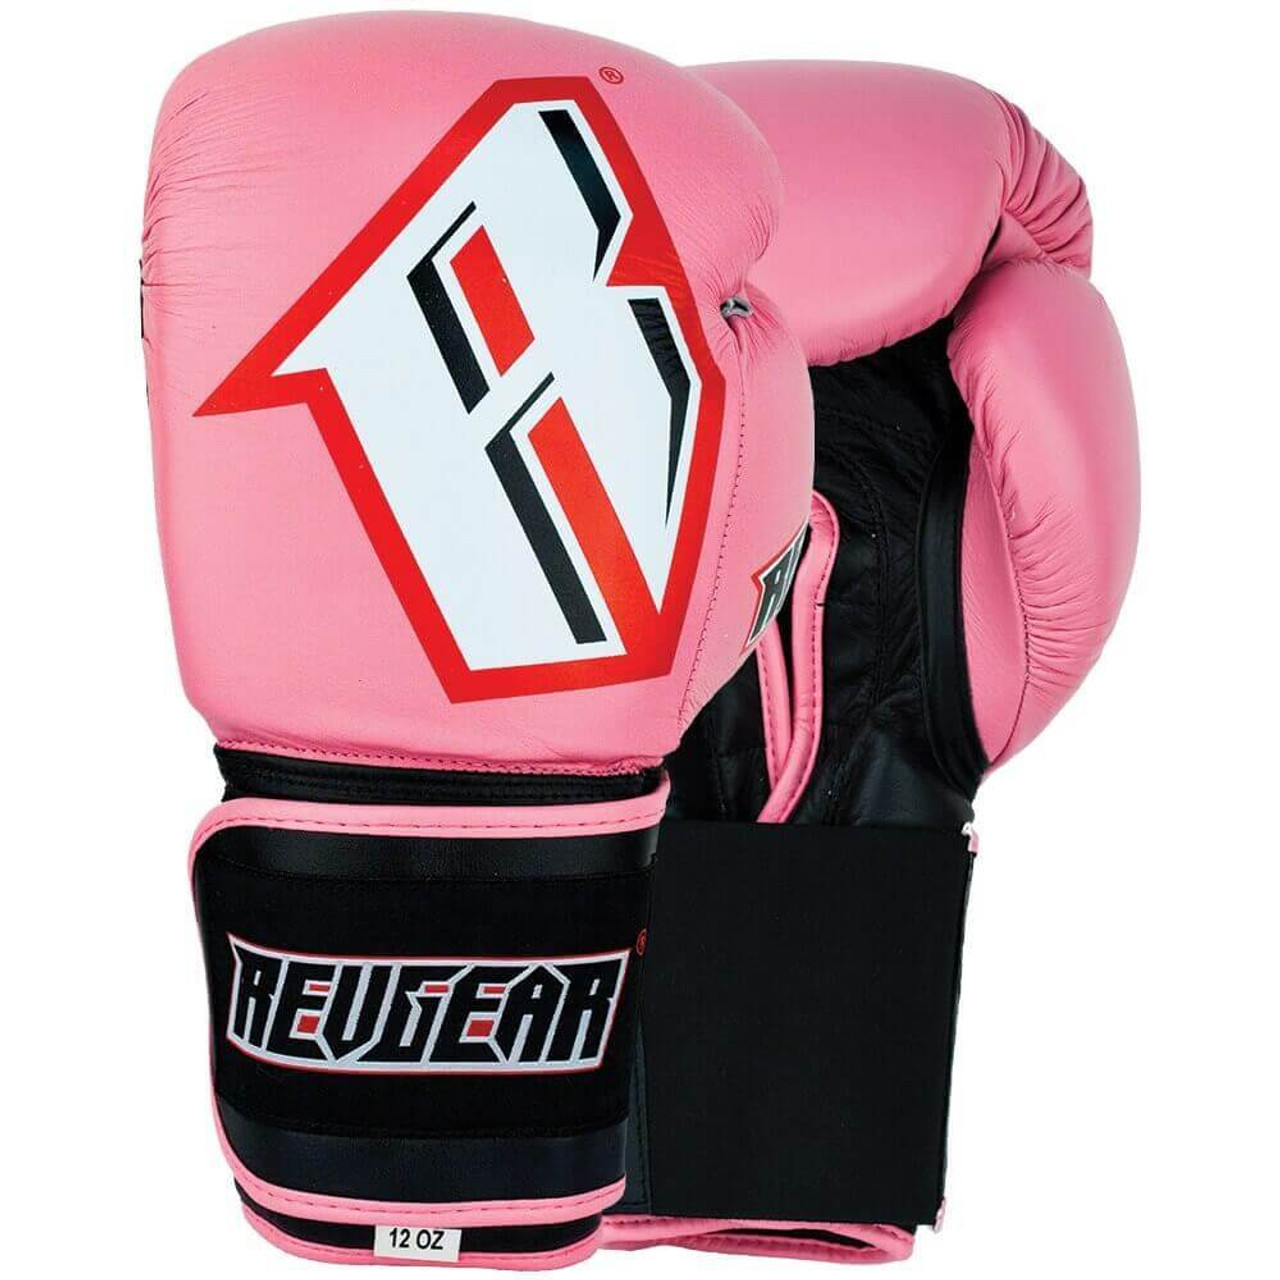 Sentinel S3 Leather Sparring Boxing Glove - Pink/Black